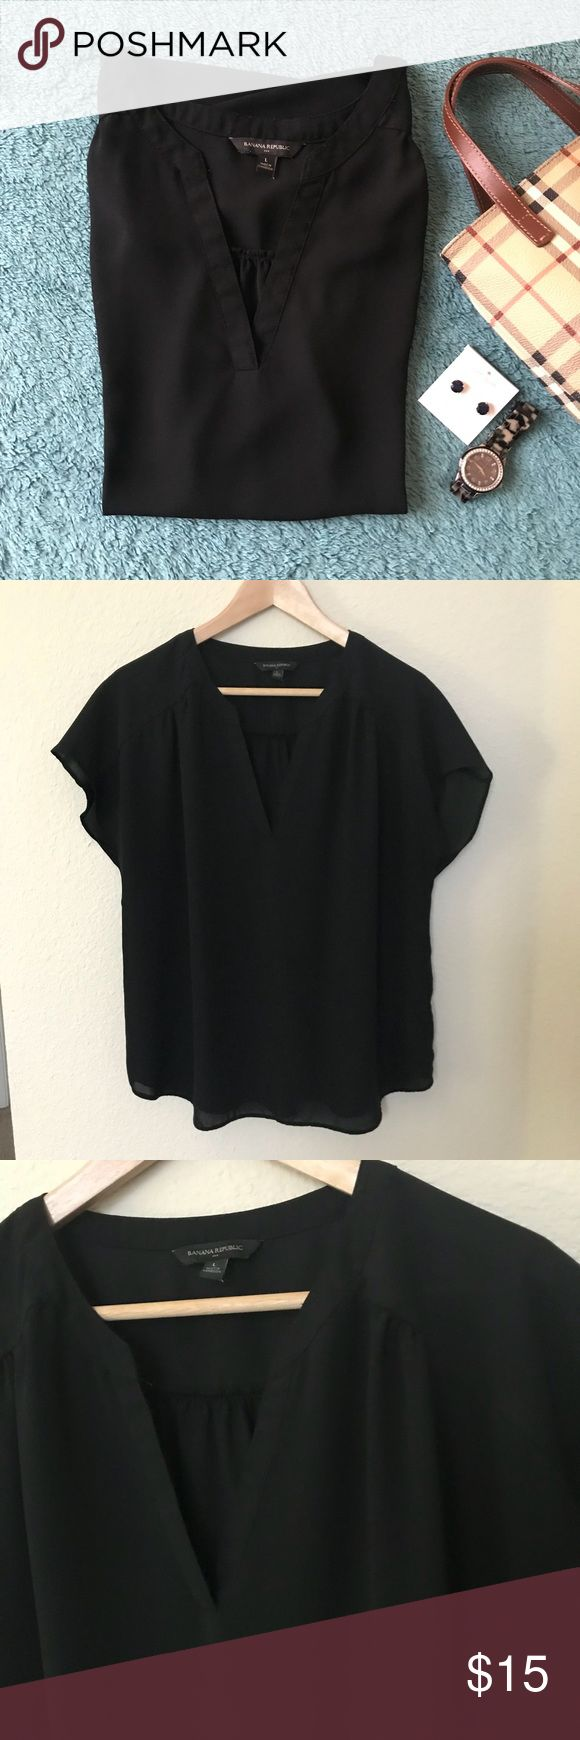 """🎉BOGO🎉 Banana Republic blouse top Banana Republic black blouse top; size L; measurements laying flat: bottom of armpit-to-armpit about 22"""" across and shoulder to hem about 25"""" long; used once and in excellent condition. Banana Republic Tops Blouses"""